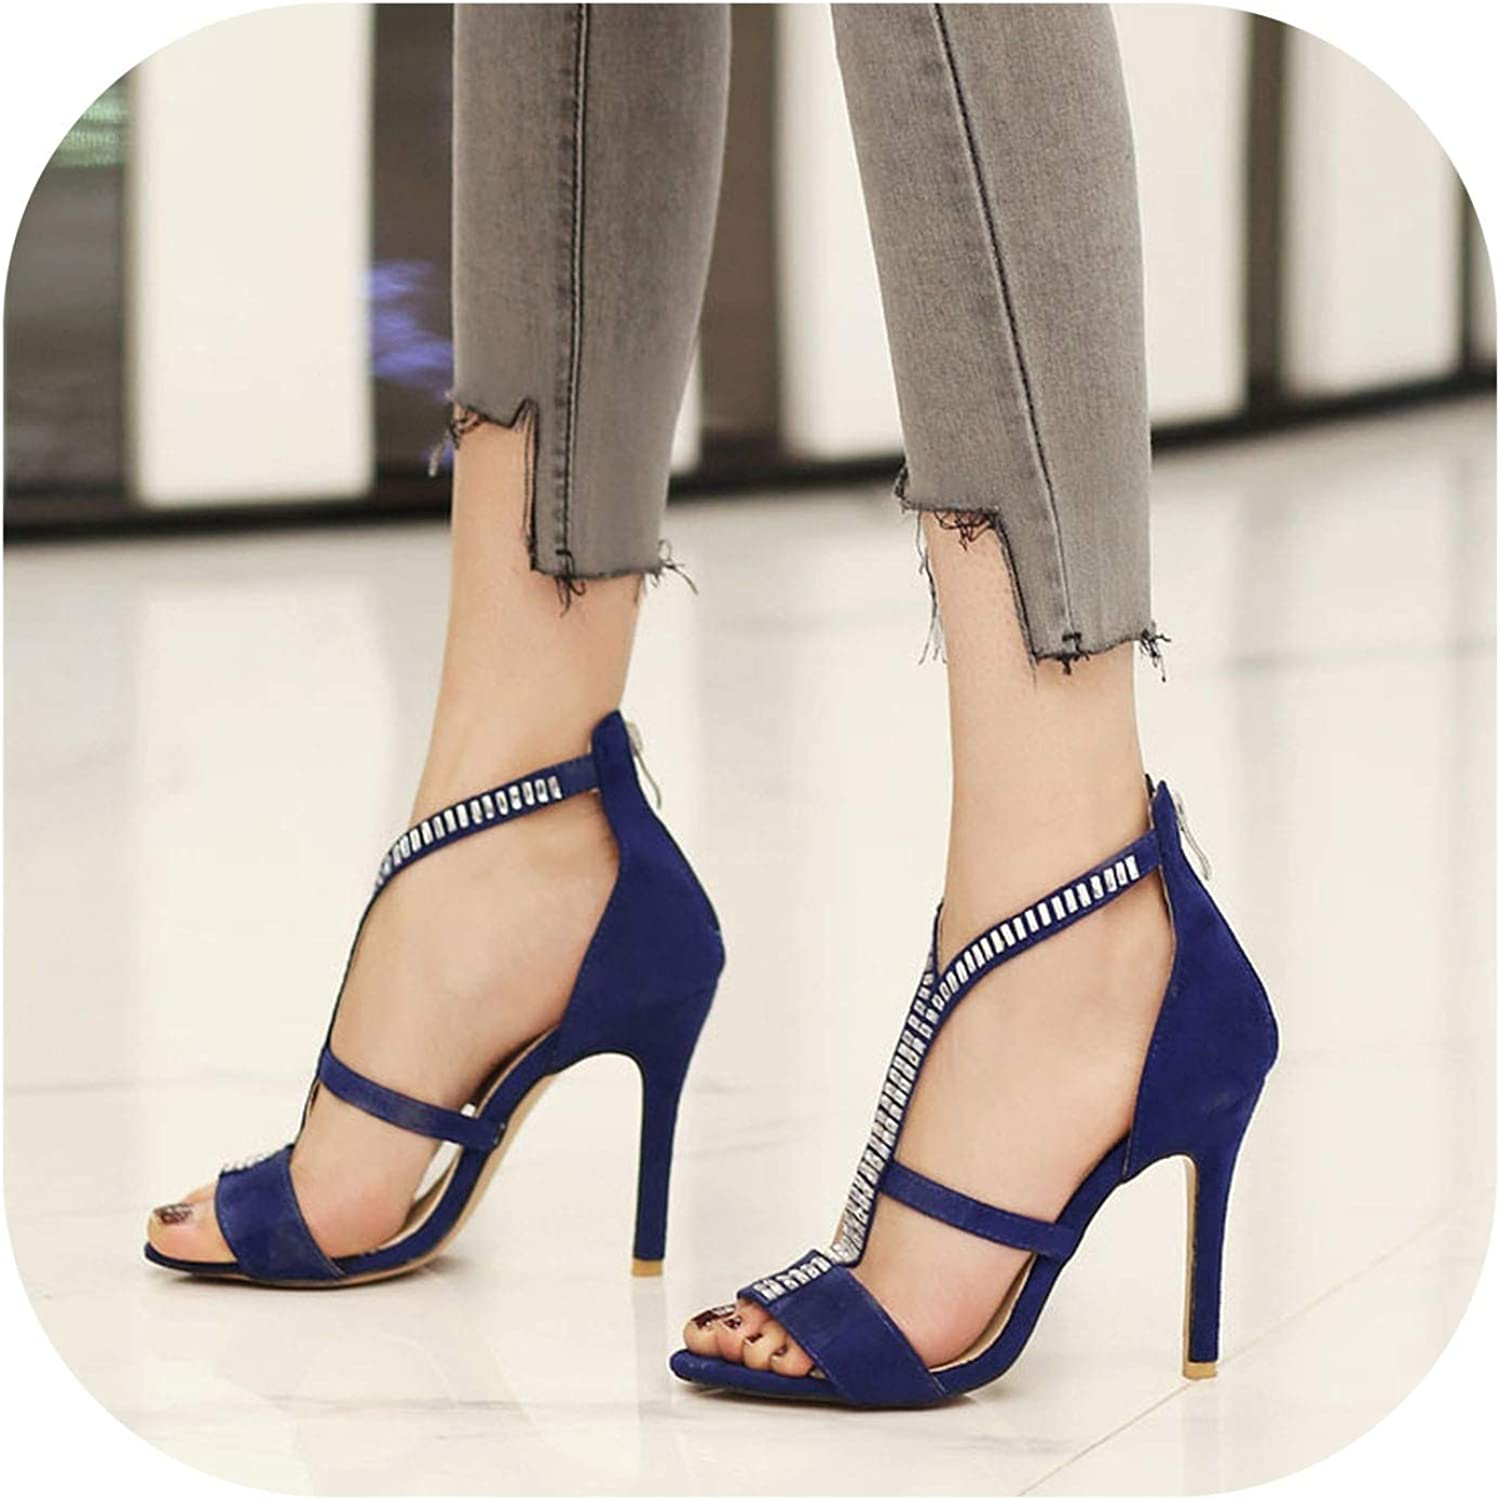 Big Size 32-46 Shoes Thin High Heels Crystal T-Strap Open Toe Cut Outs Gladiator Sandals,Blue,6